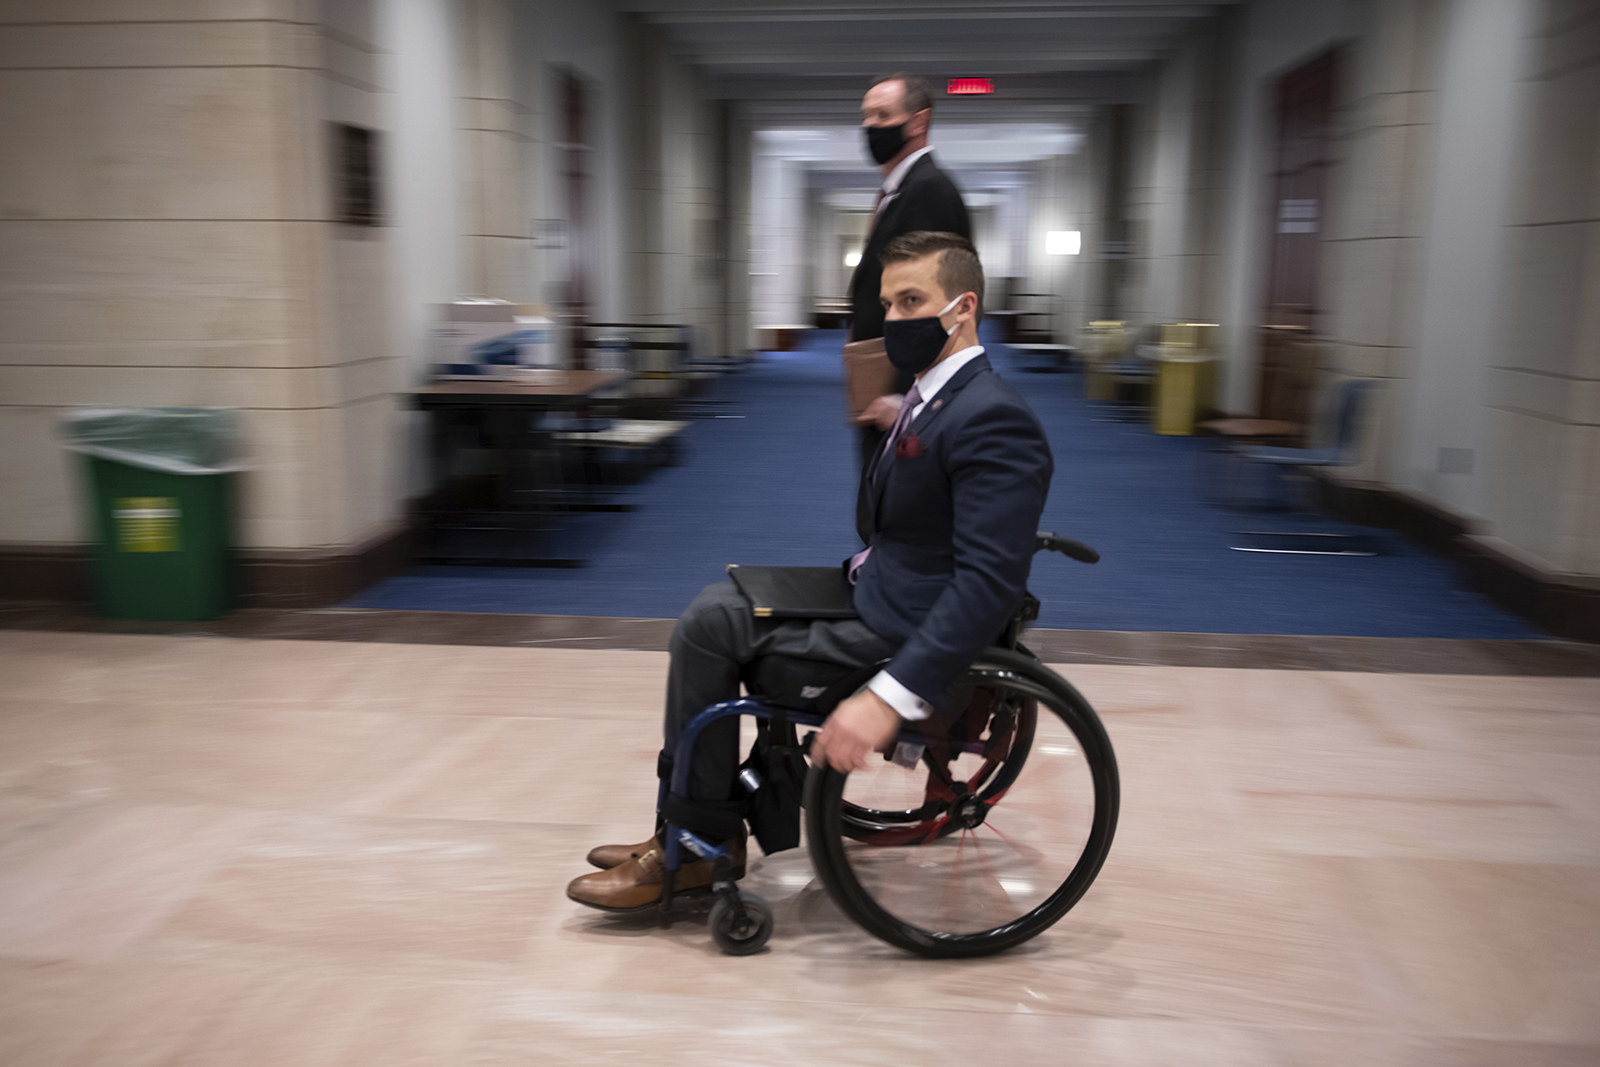 Cawthorn wears a suit and sits in a wheelchair against a blurred background in a Capitol corridor